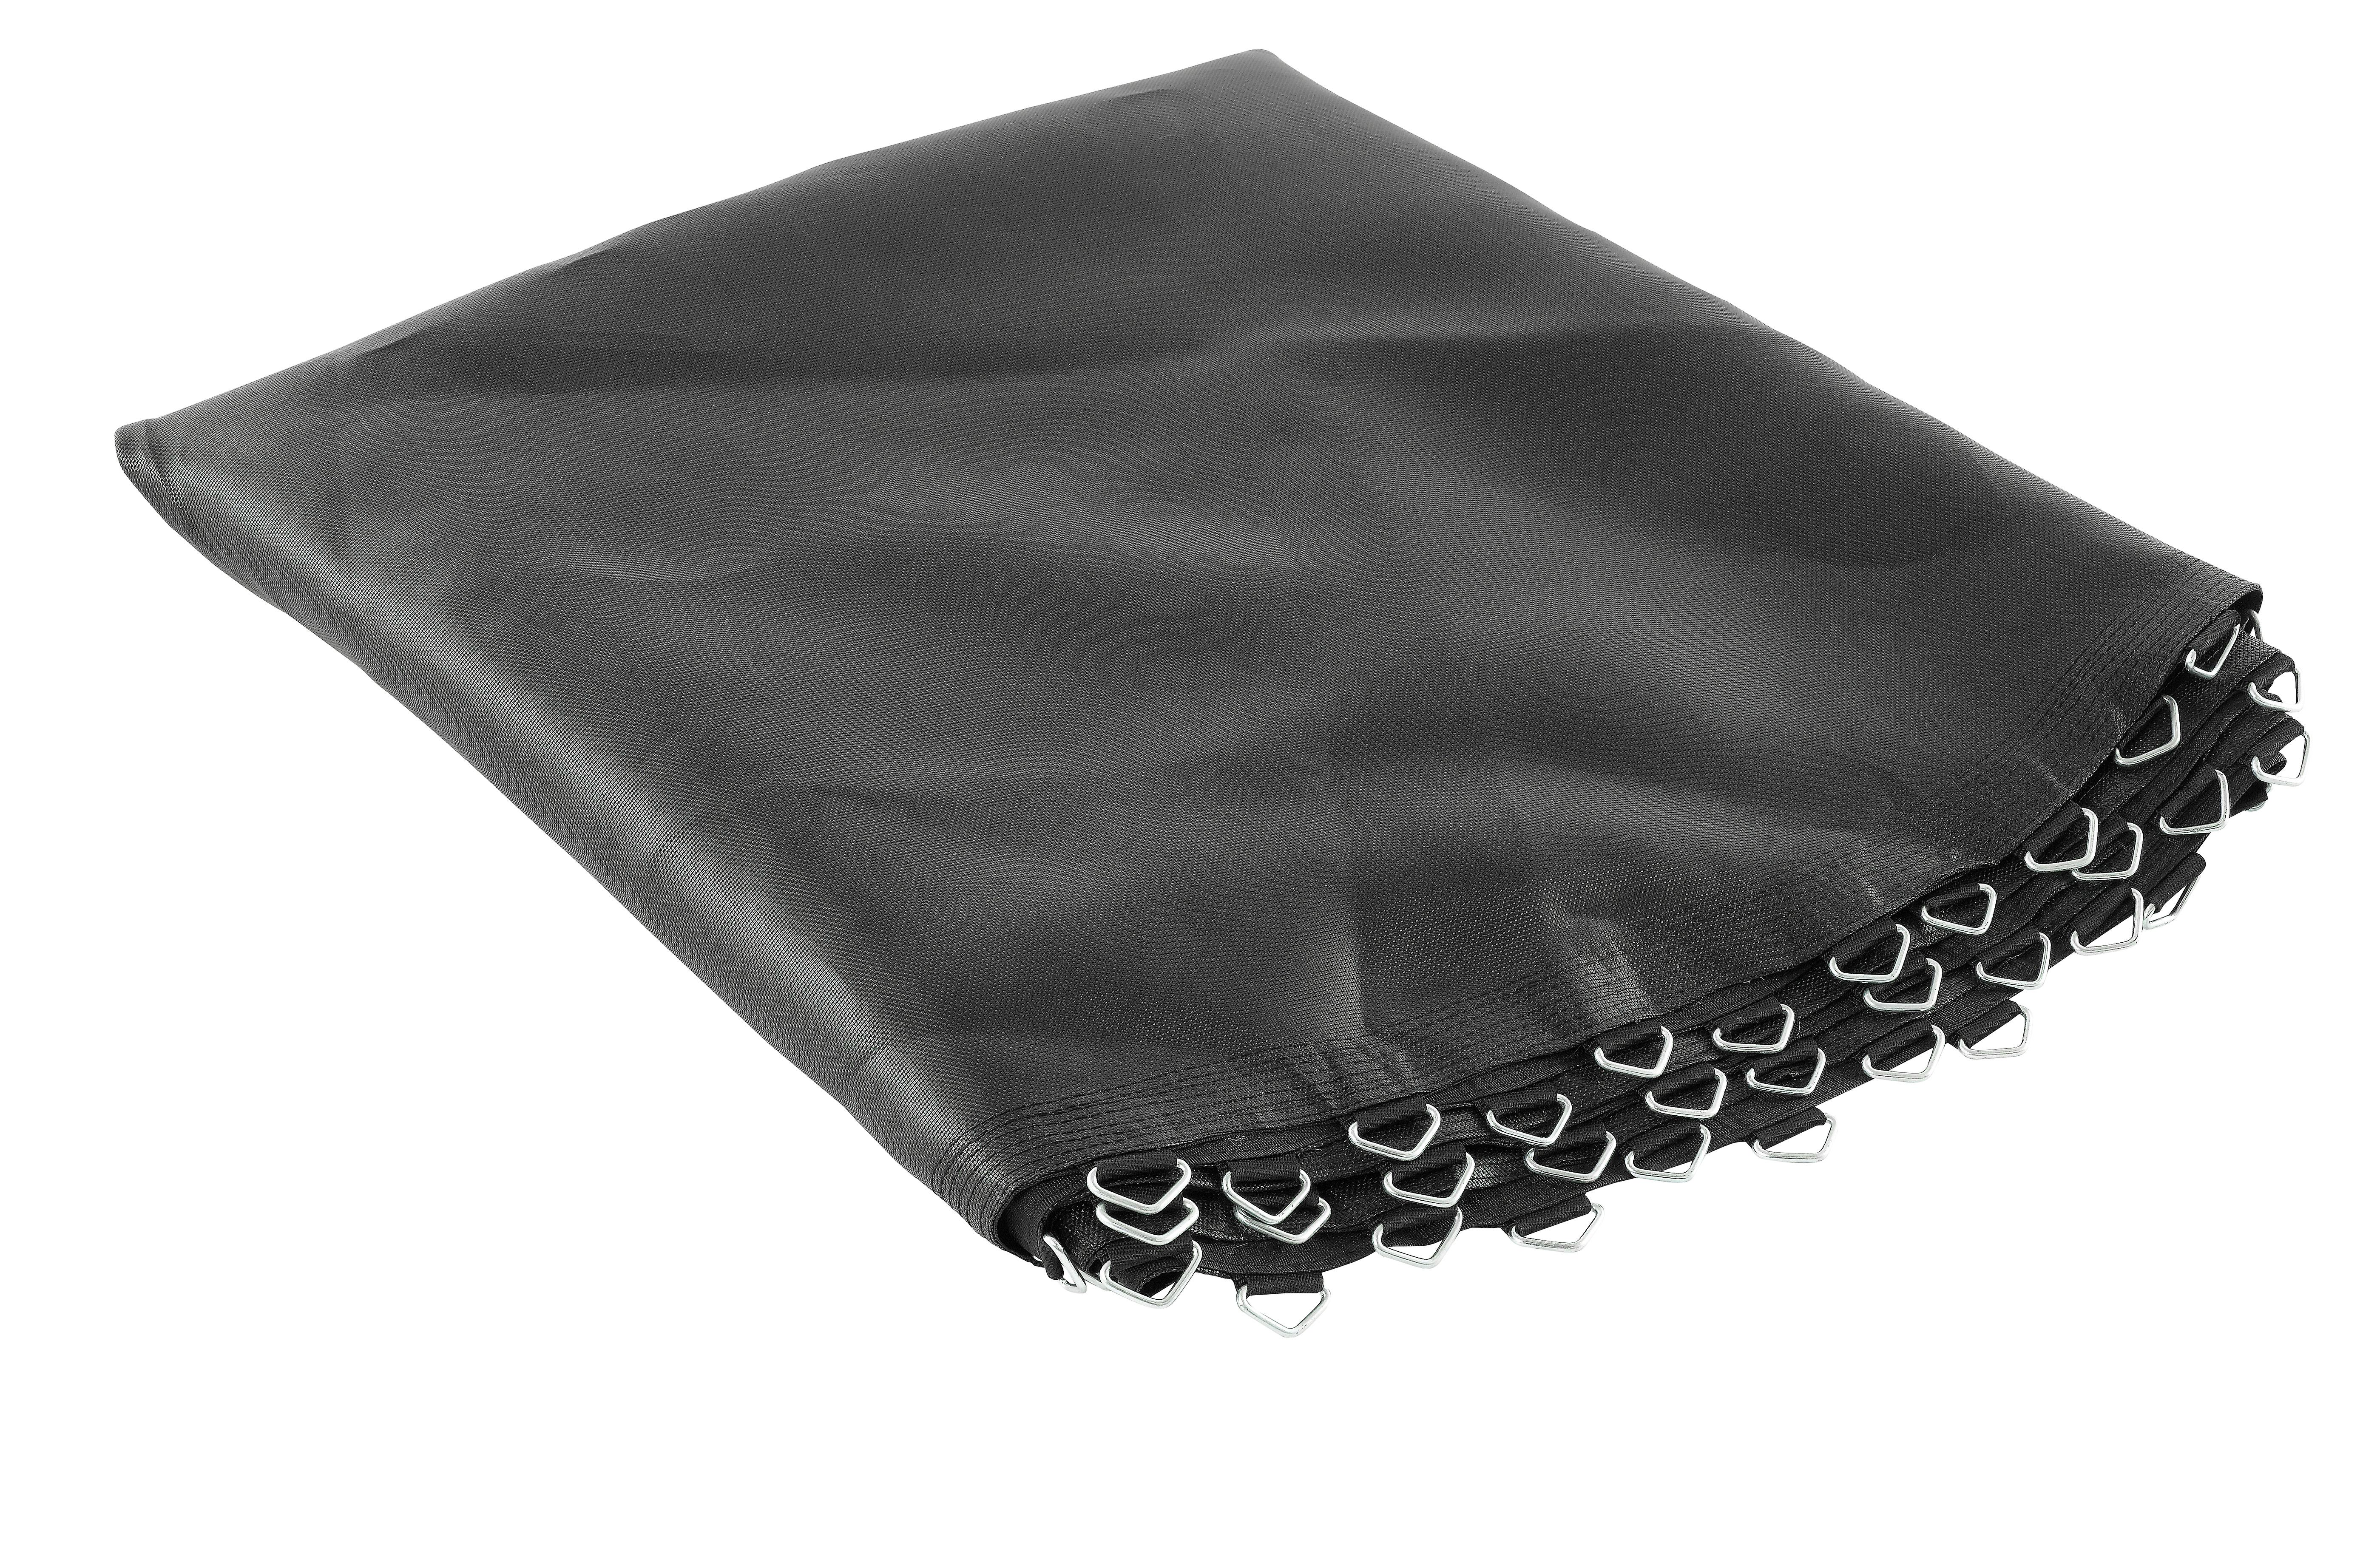 Upper Bounce Trampoline Jumping Mat, fits for 14 FT. Round Frames with 88 V-Rings using 7